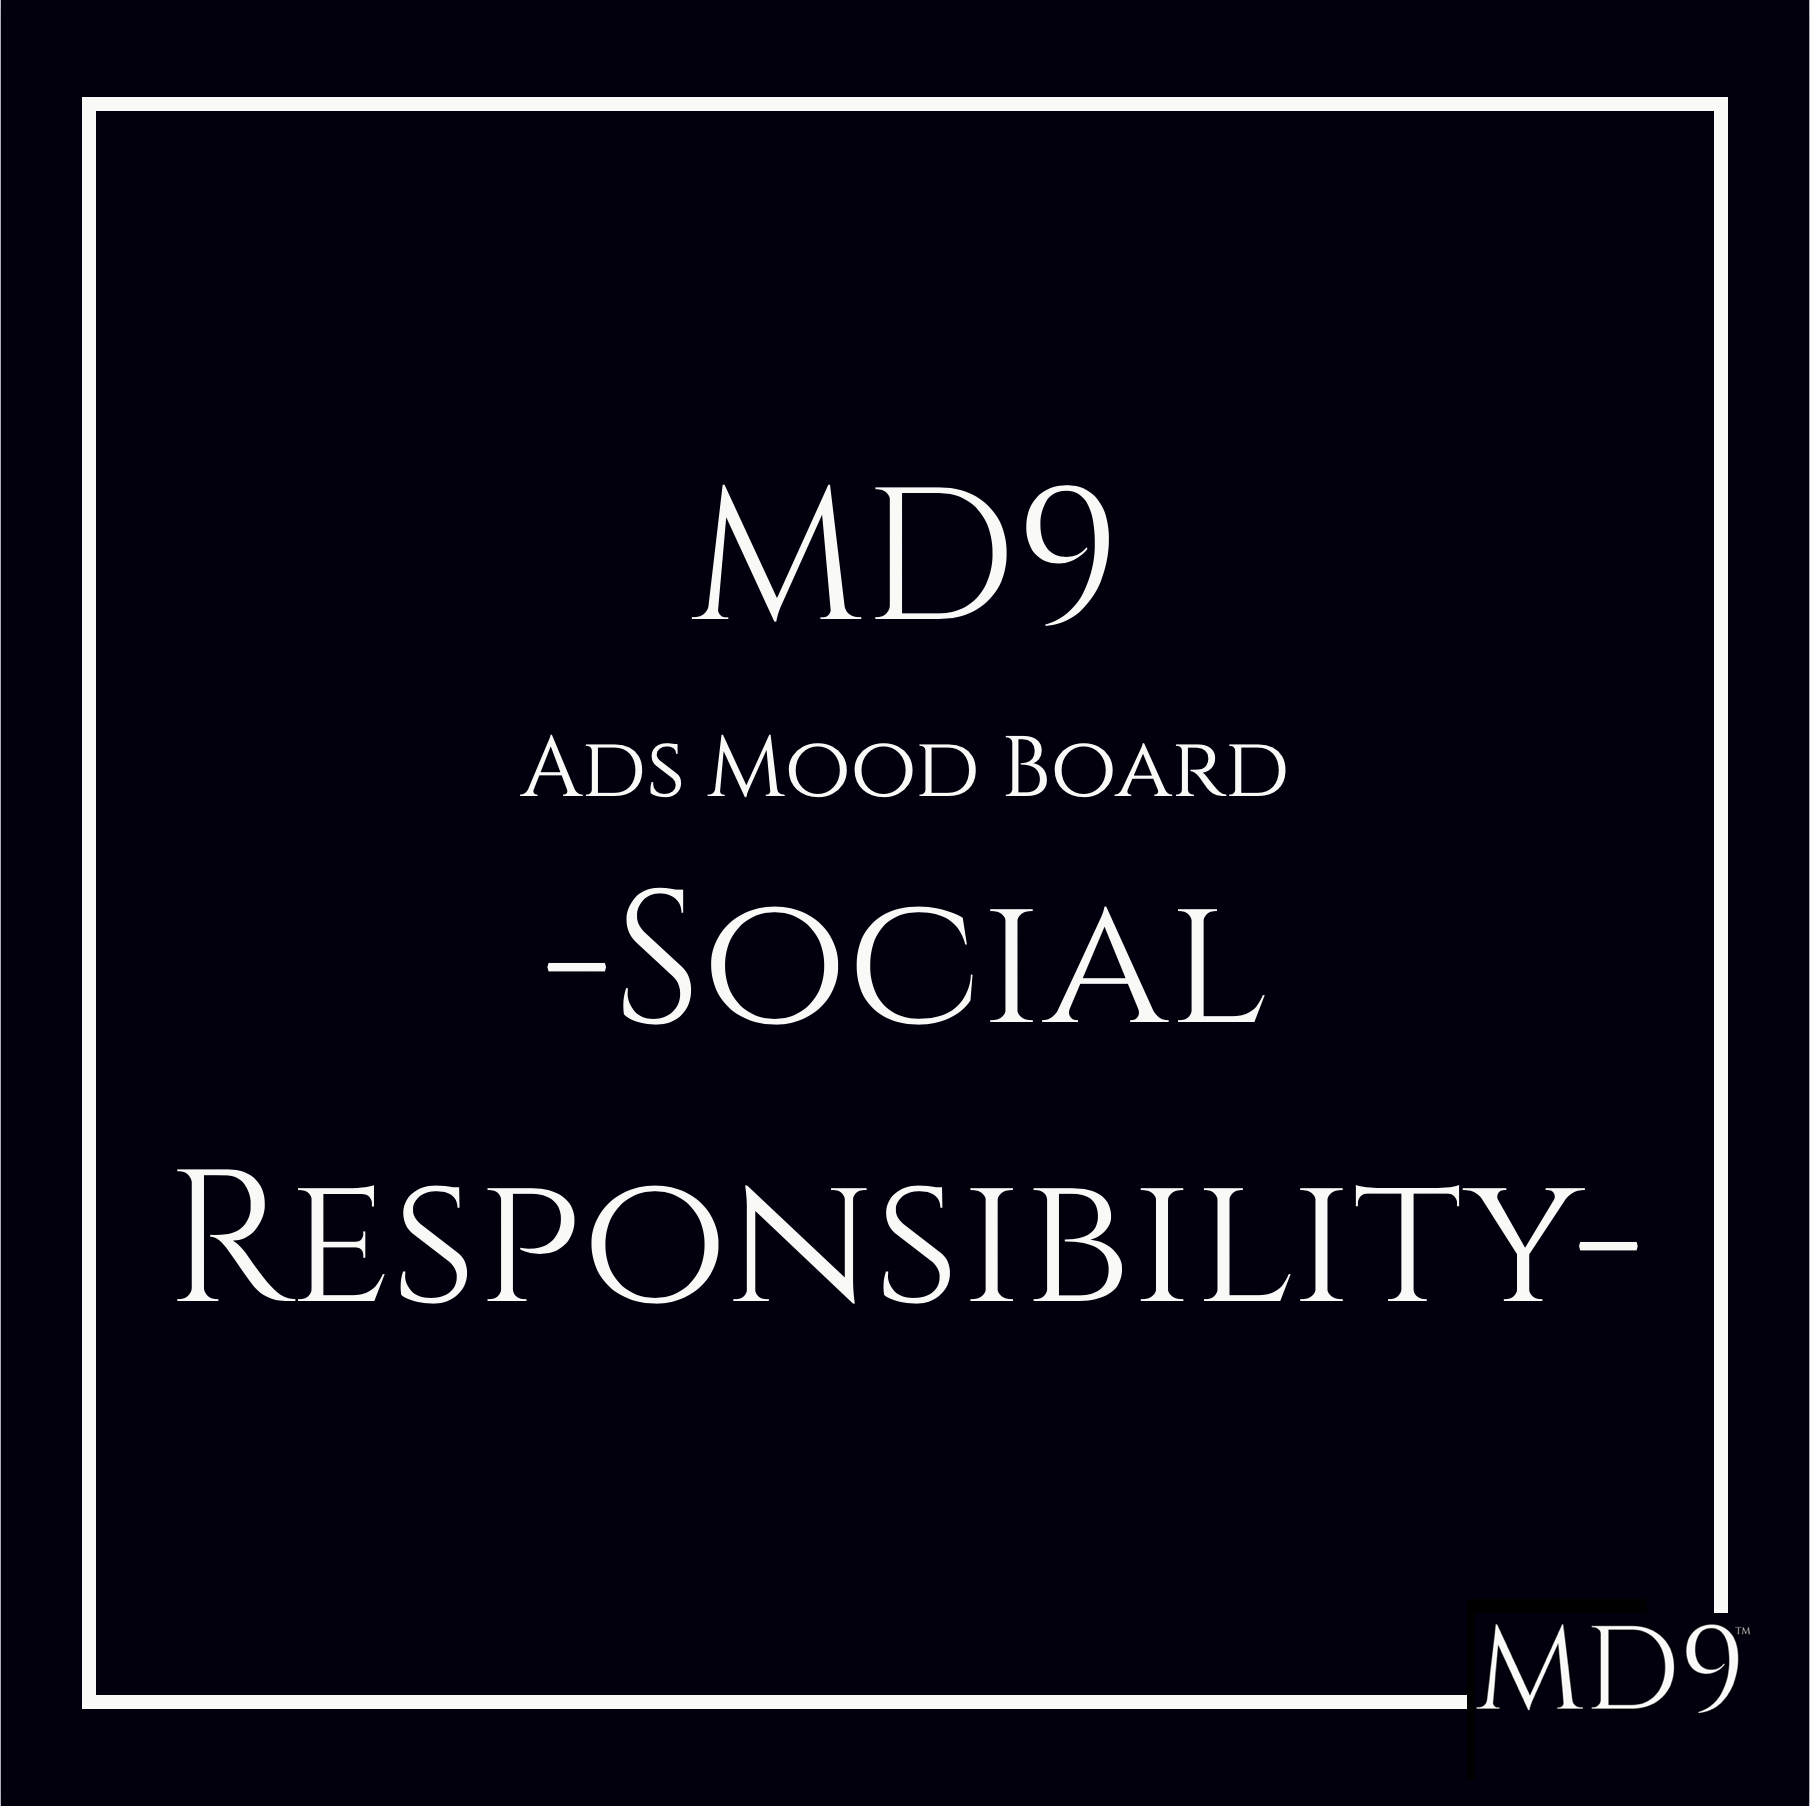 MD9's Ads Mood Board – Social Responsibility